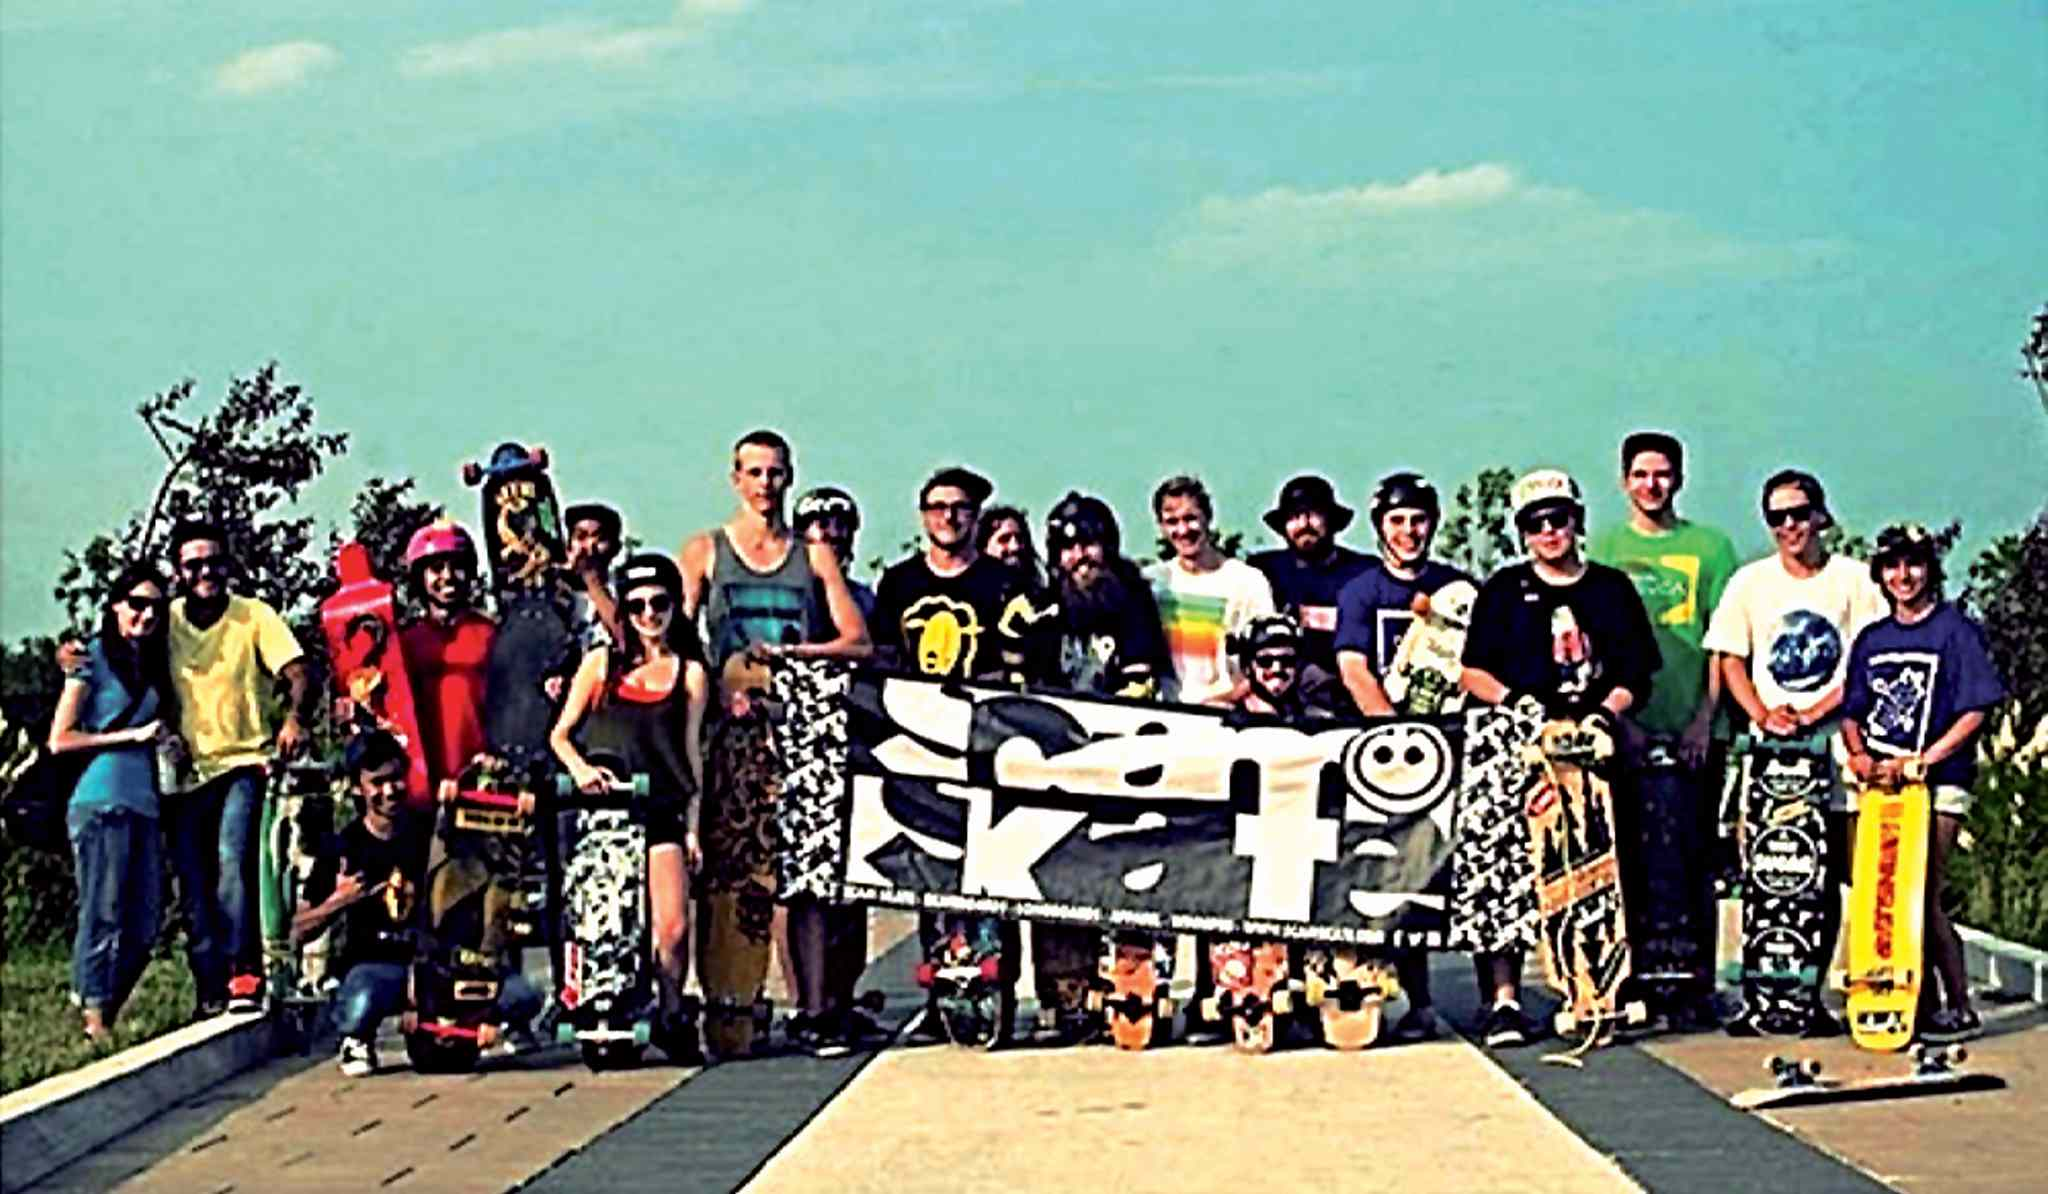 Competitors at the Sugar Point longboarding competition on July 19.